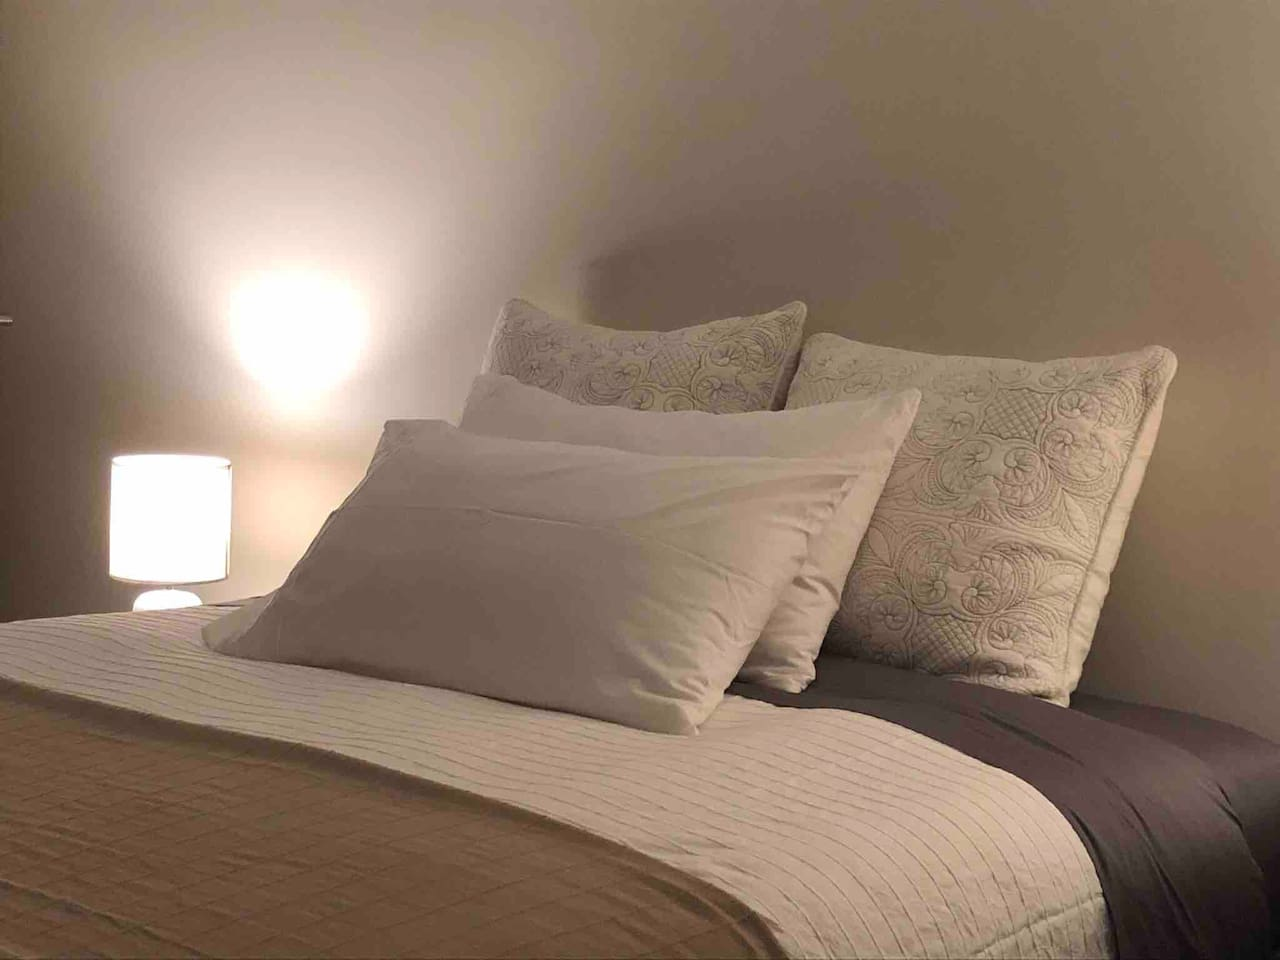 Clean sheets and pillows are provided